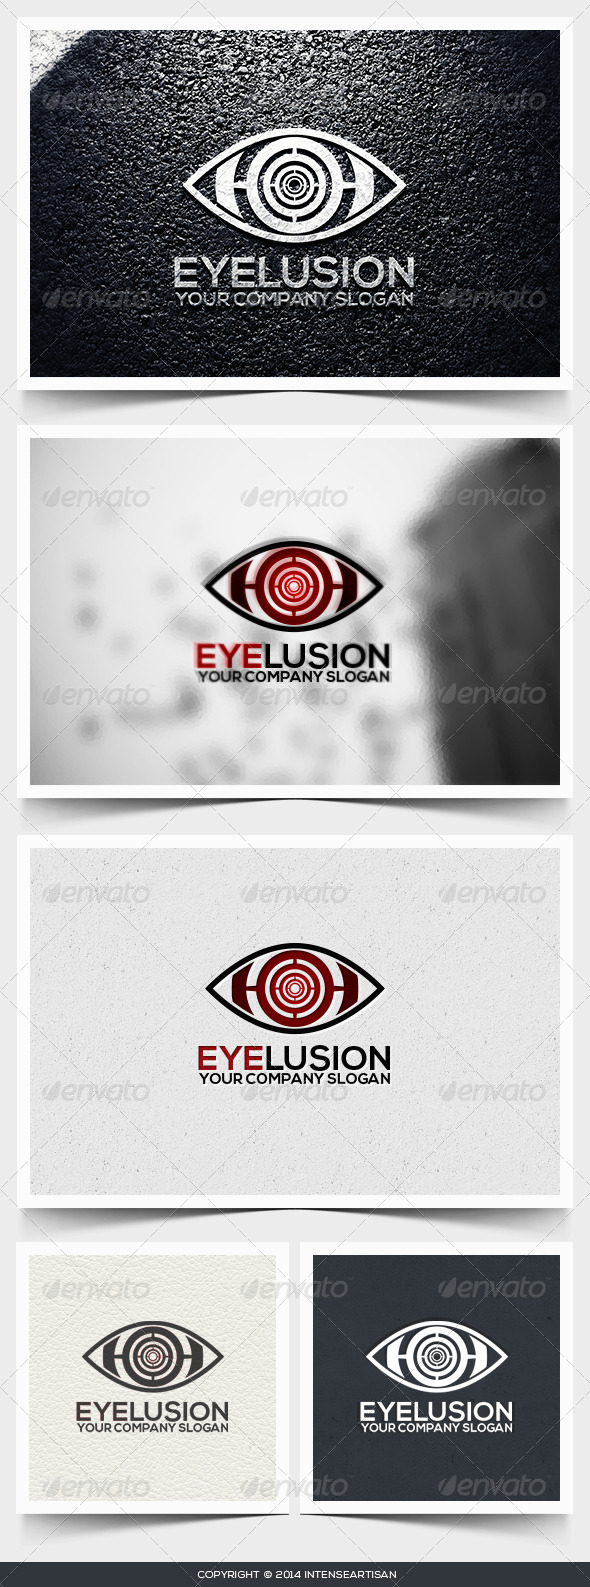 Eyelusion Logo Template